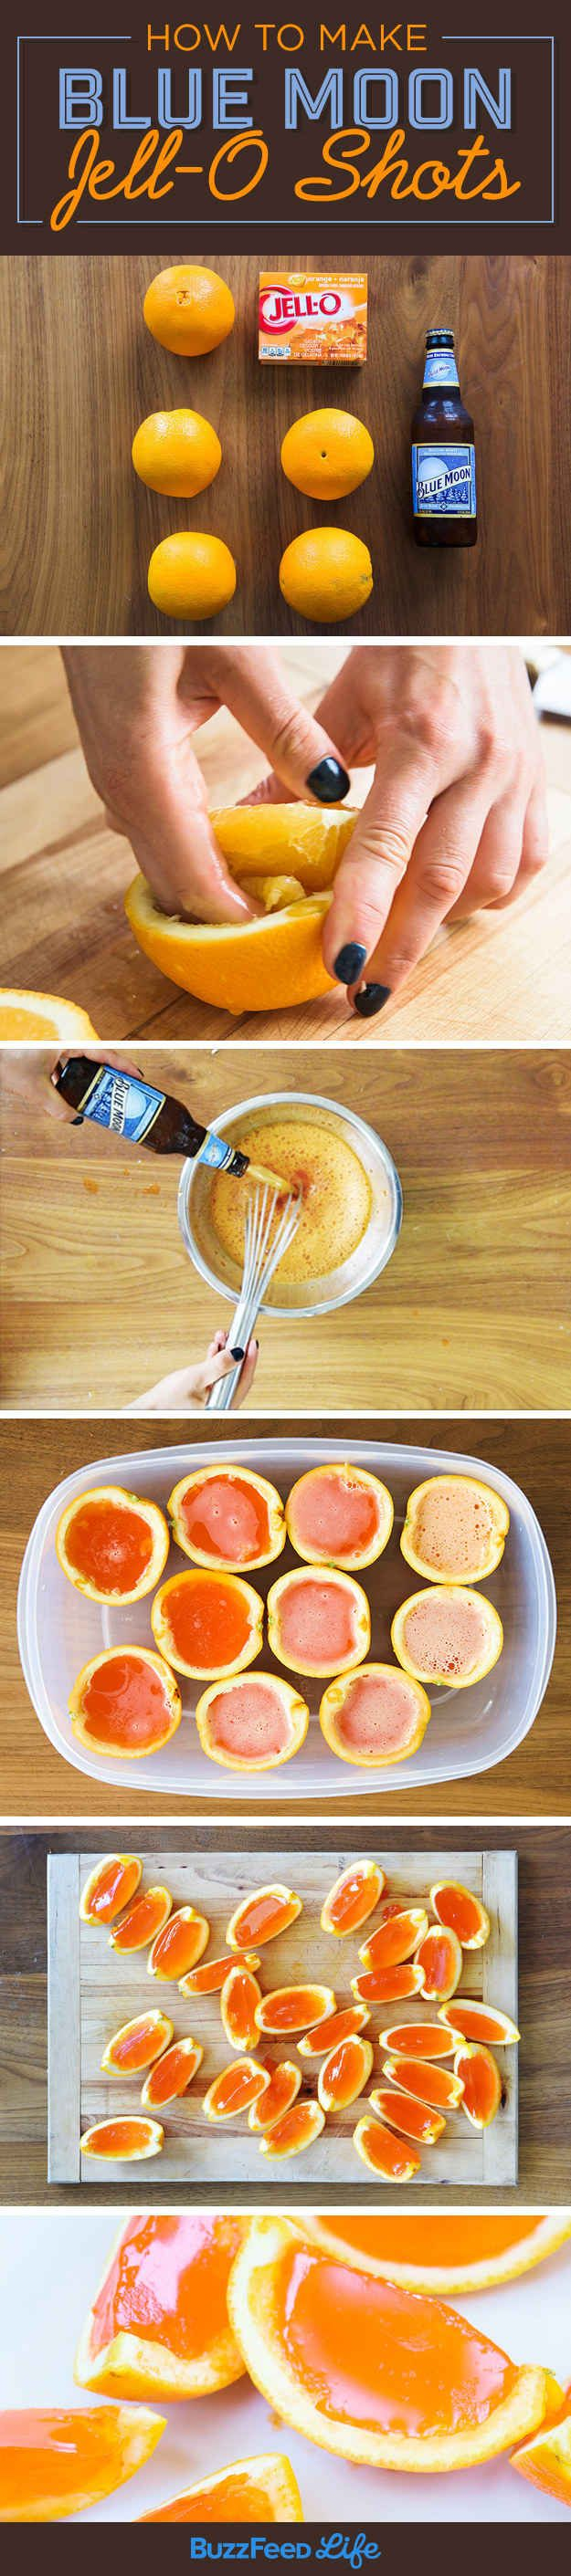 Here's How To Make Beer Jell-O Shots In Orange Wedges